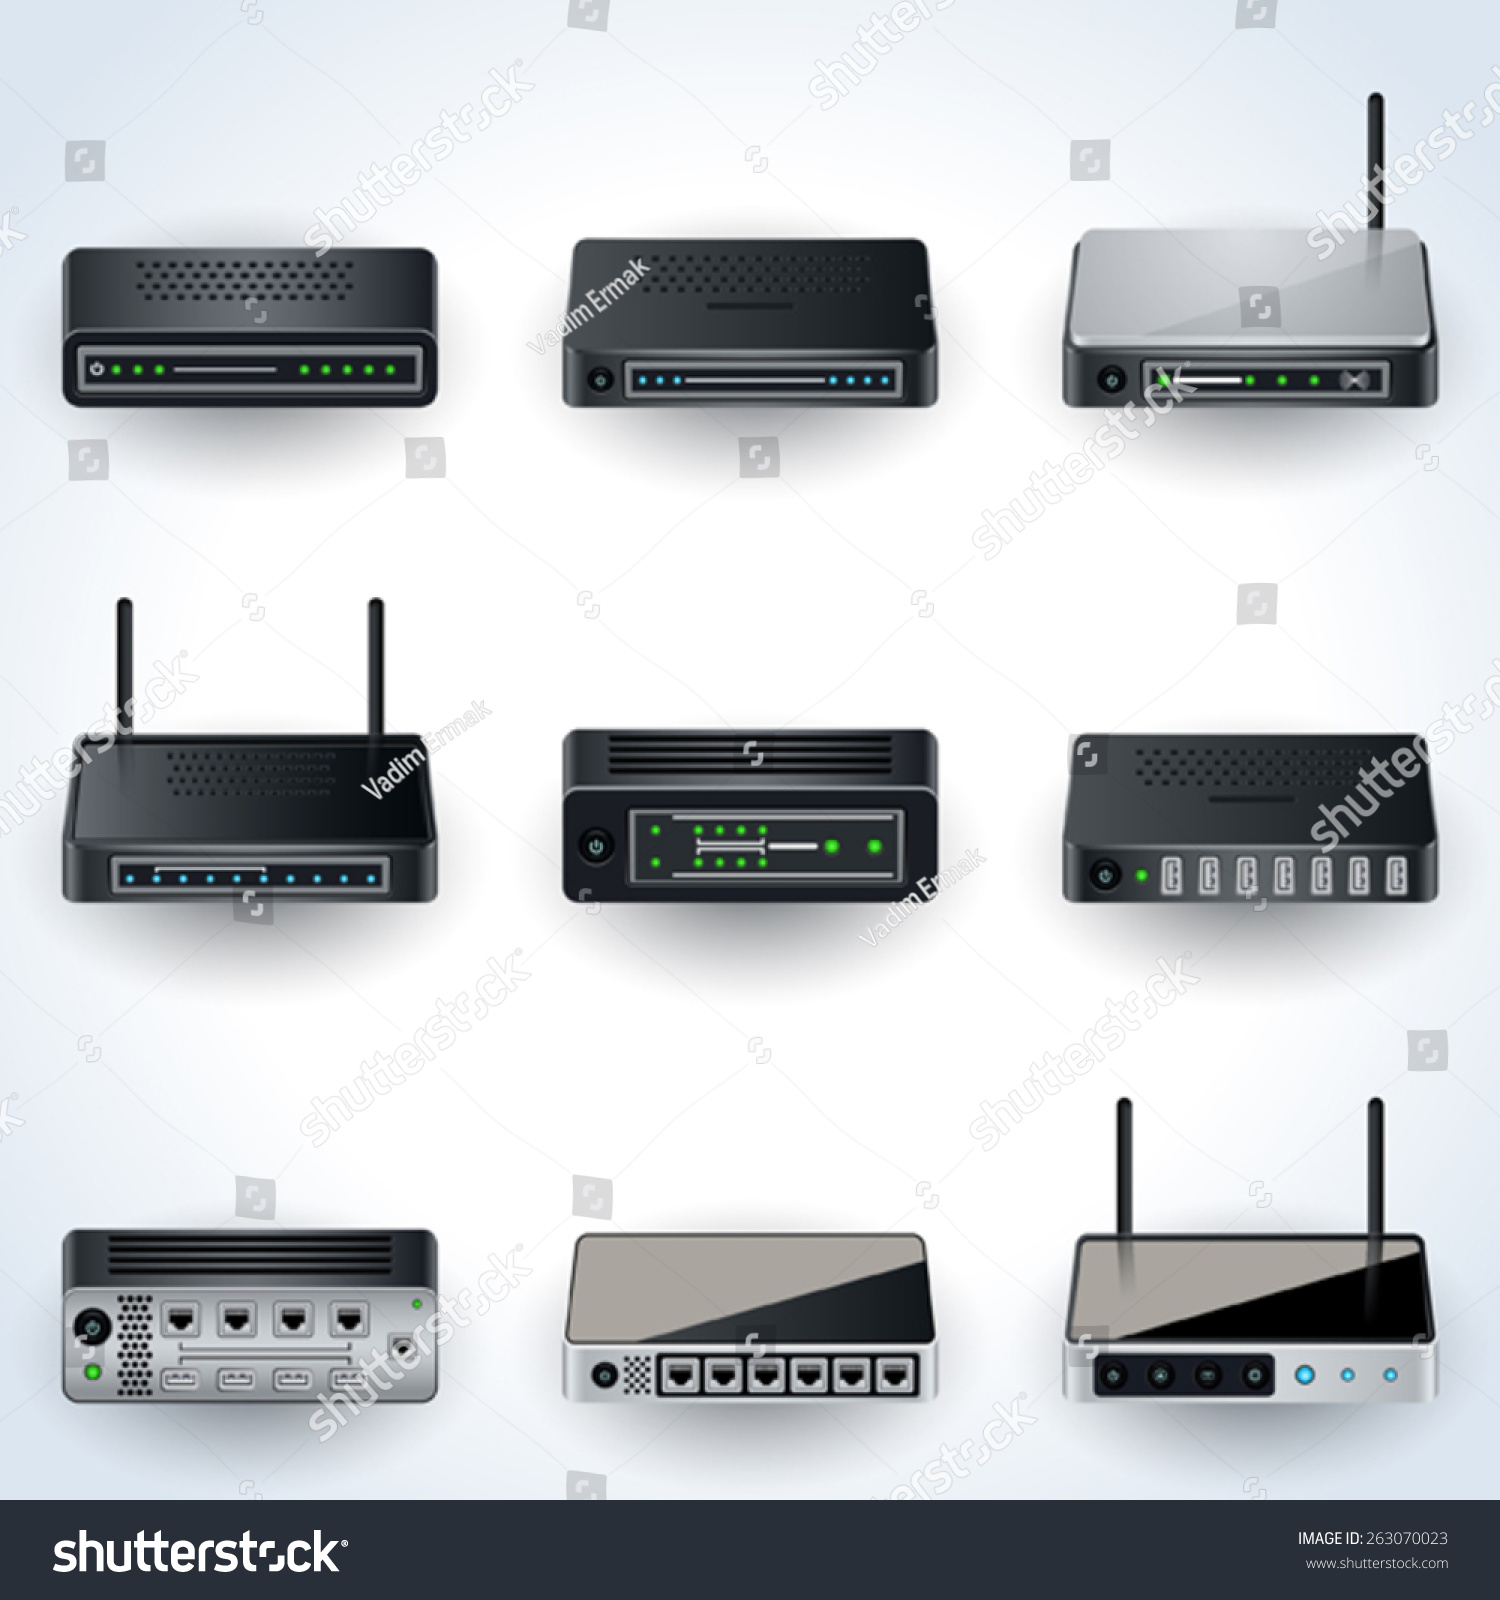 Network Equipment Icons : Network equipment icons modems routers hubs realistic